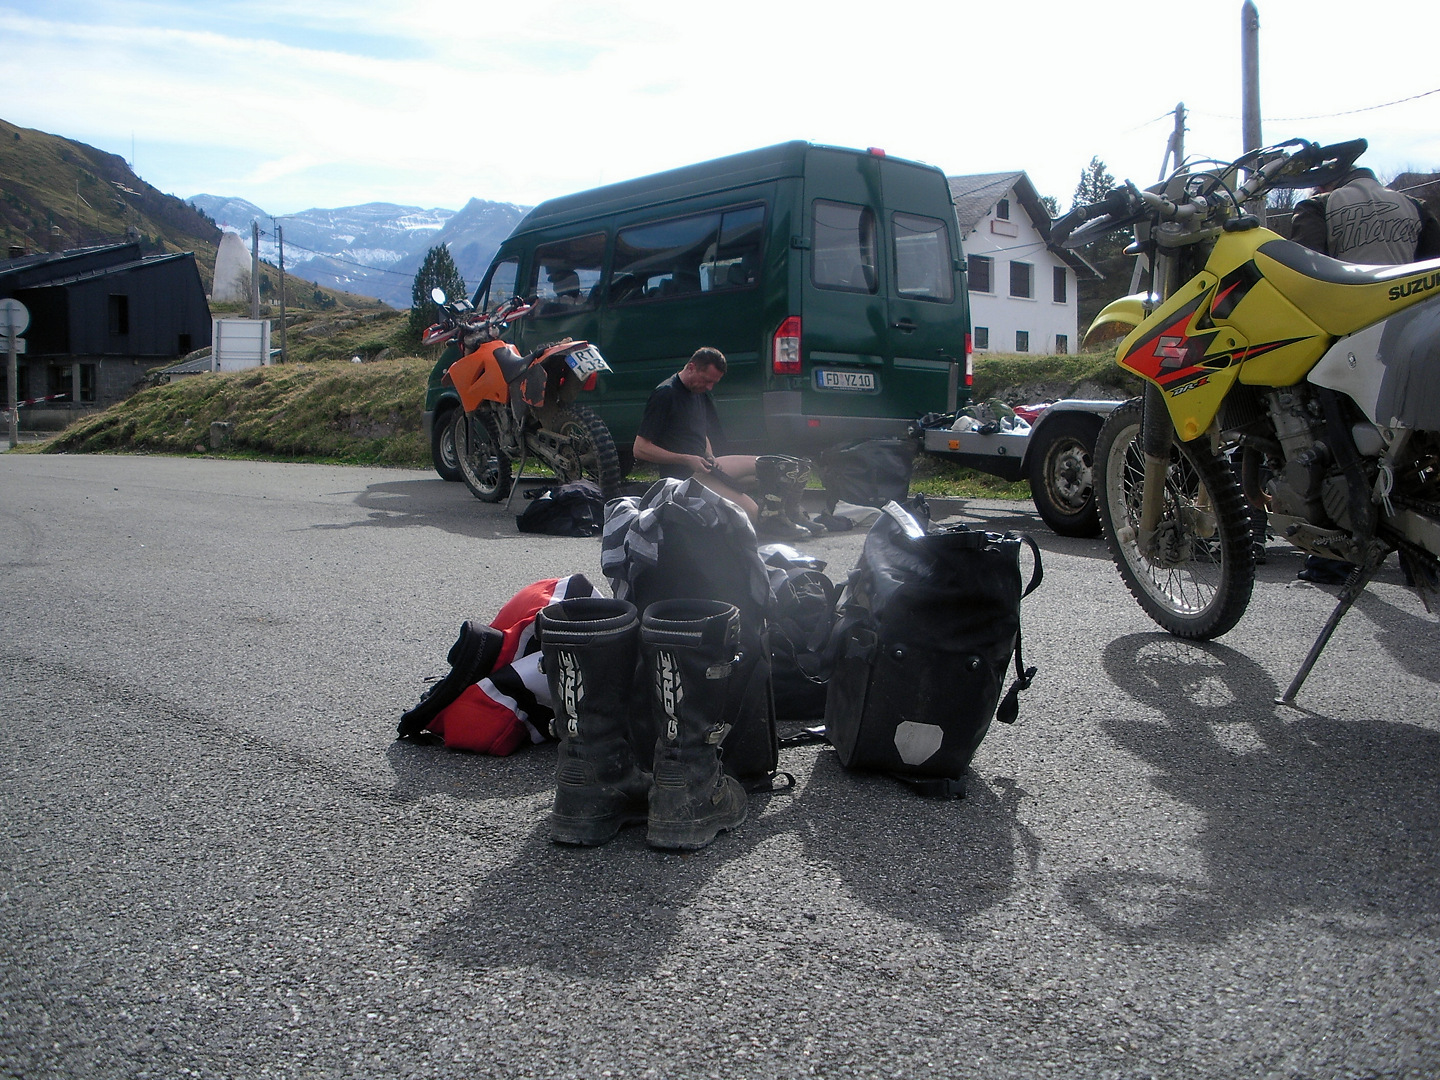 Jakobsweg 2009. Start am Somport Pass, Ankunft in Fisterre.